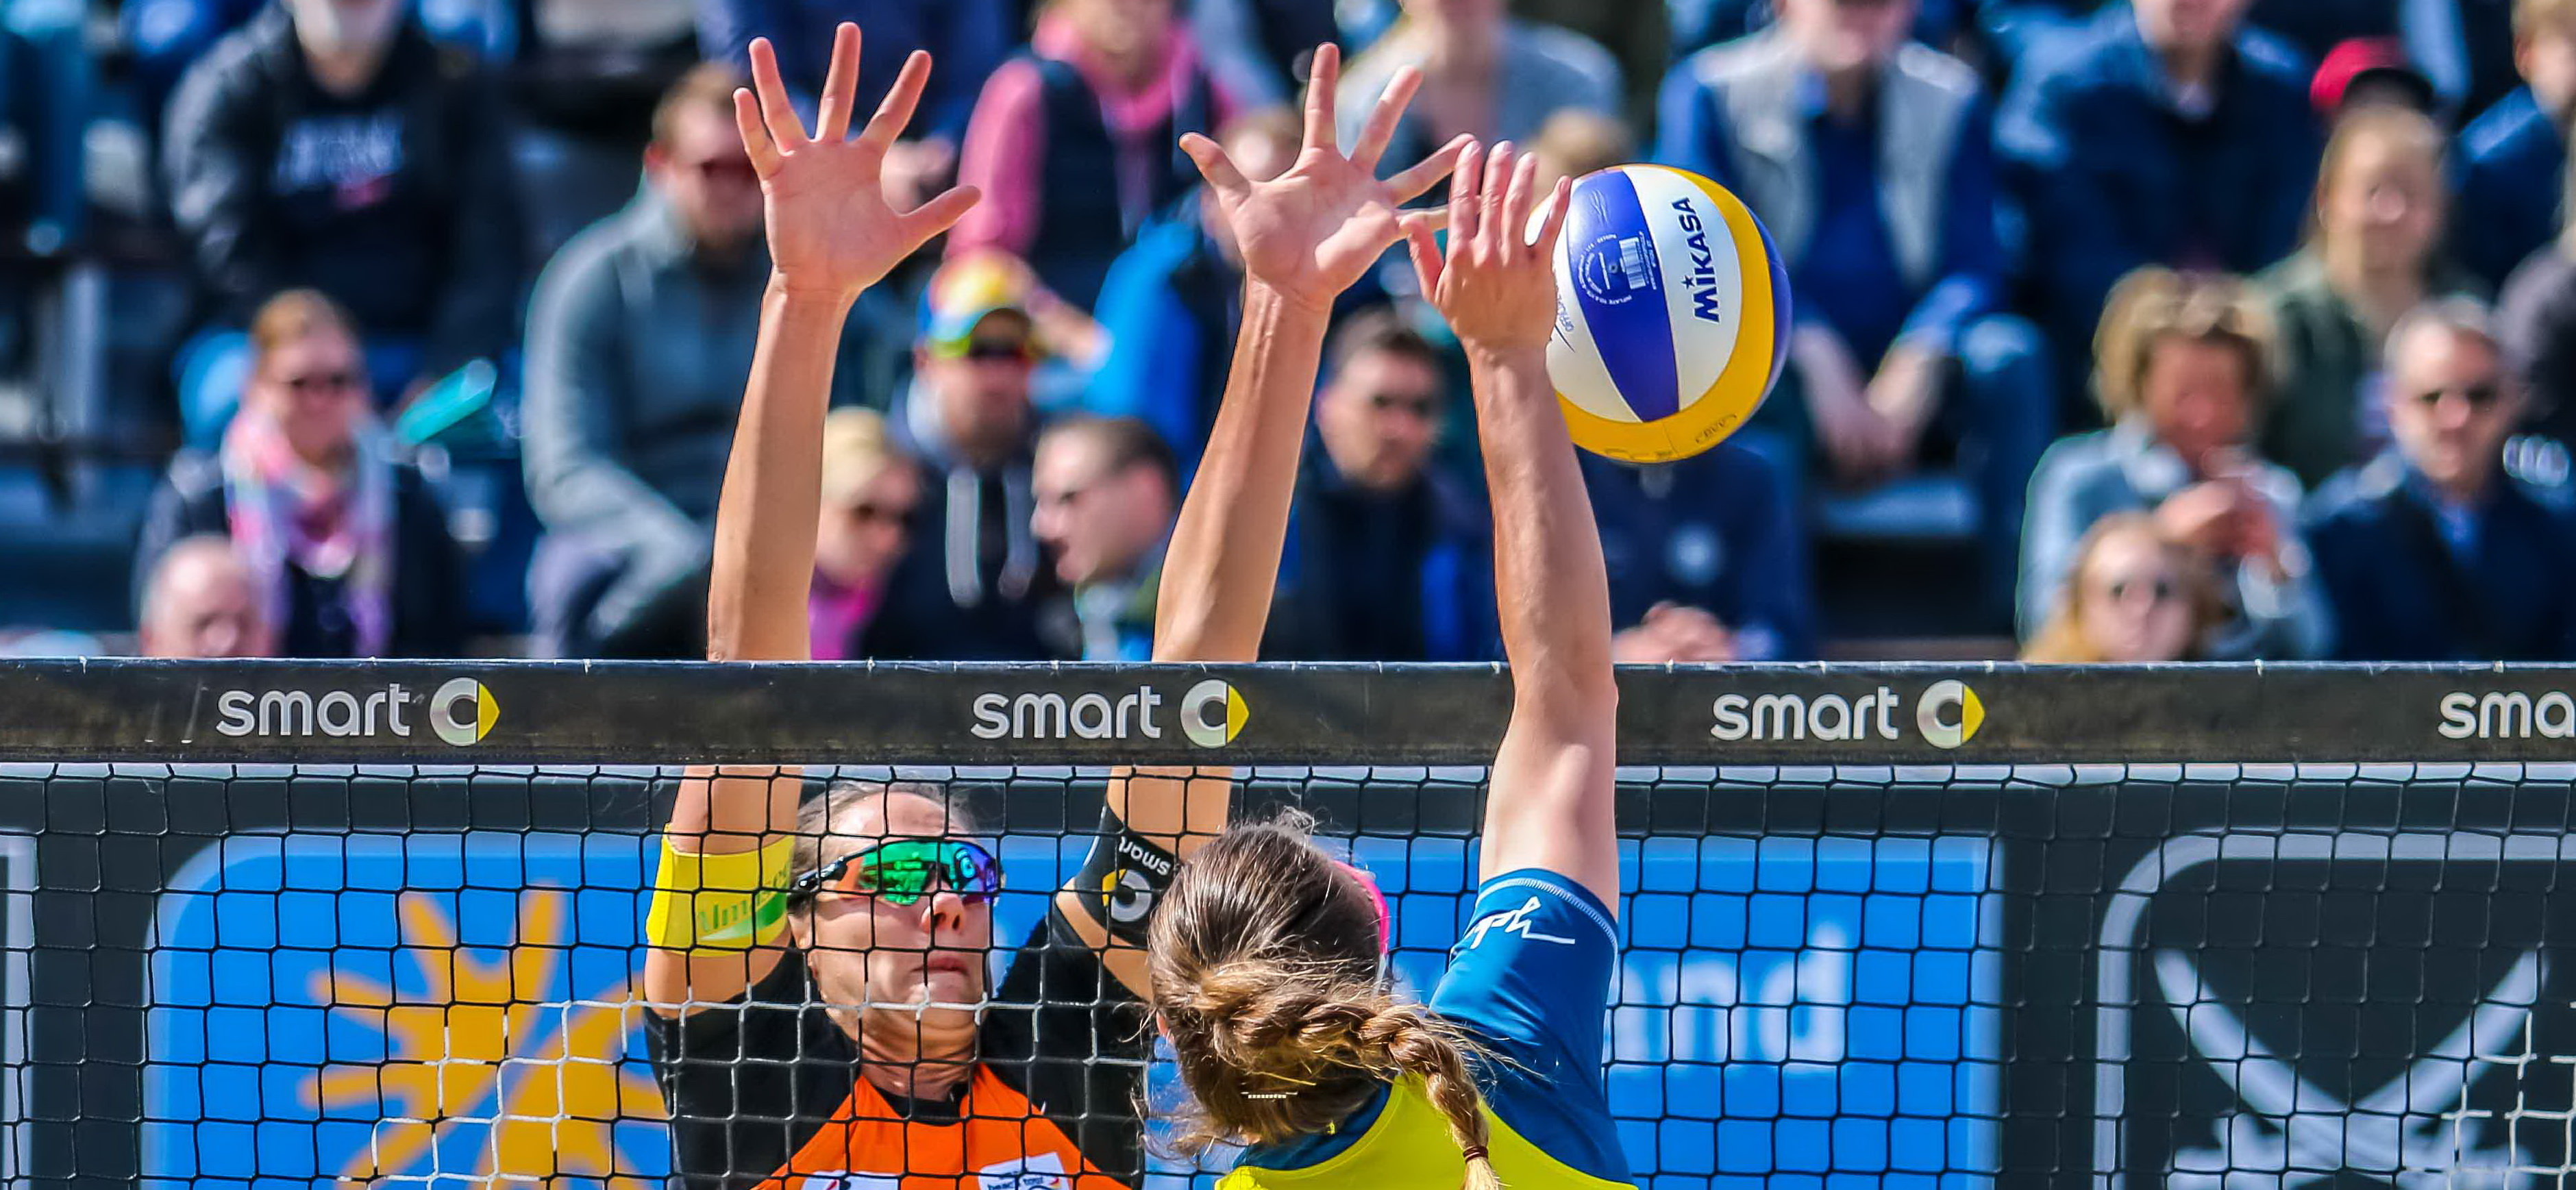 Smart_Beachvolley_Münster_130-1